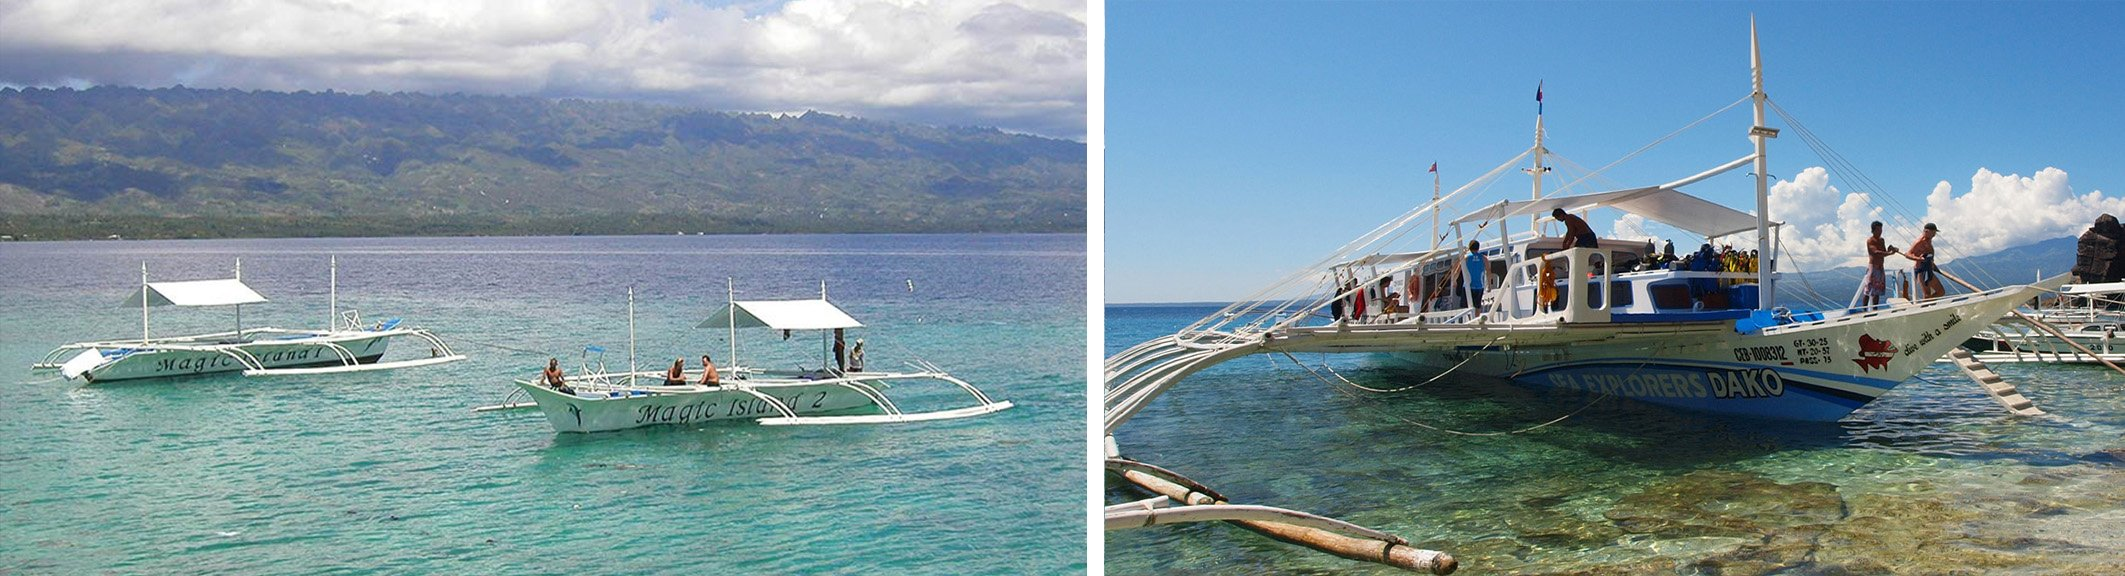 Magic Island and Sea Explorers Snorkel Boats